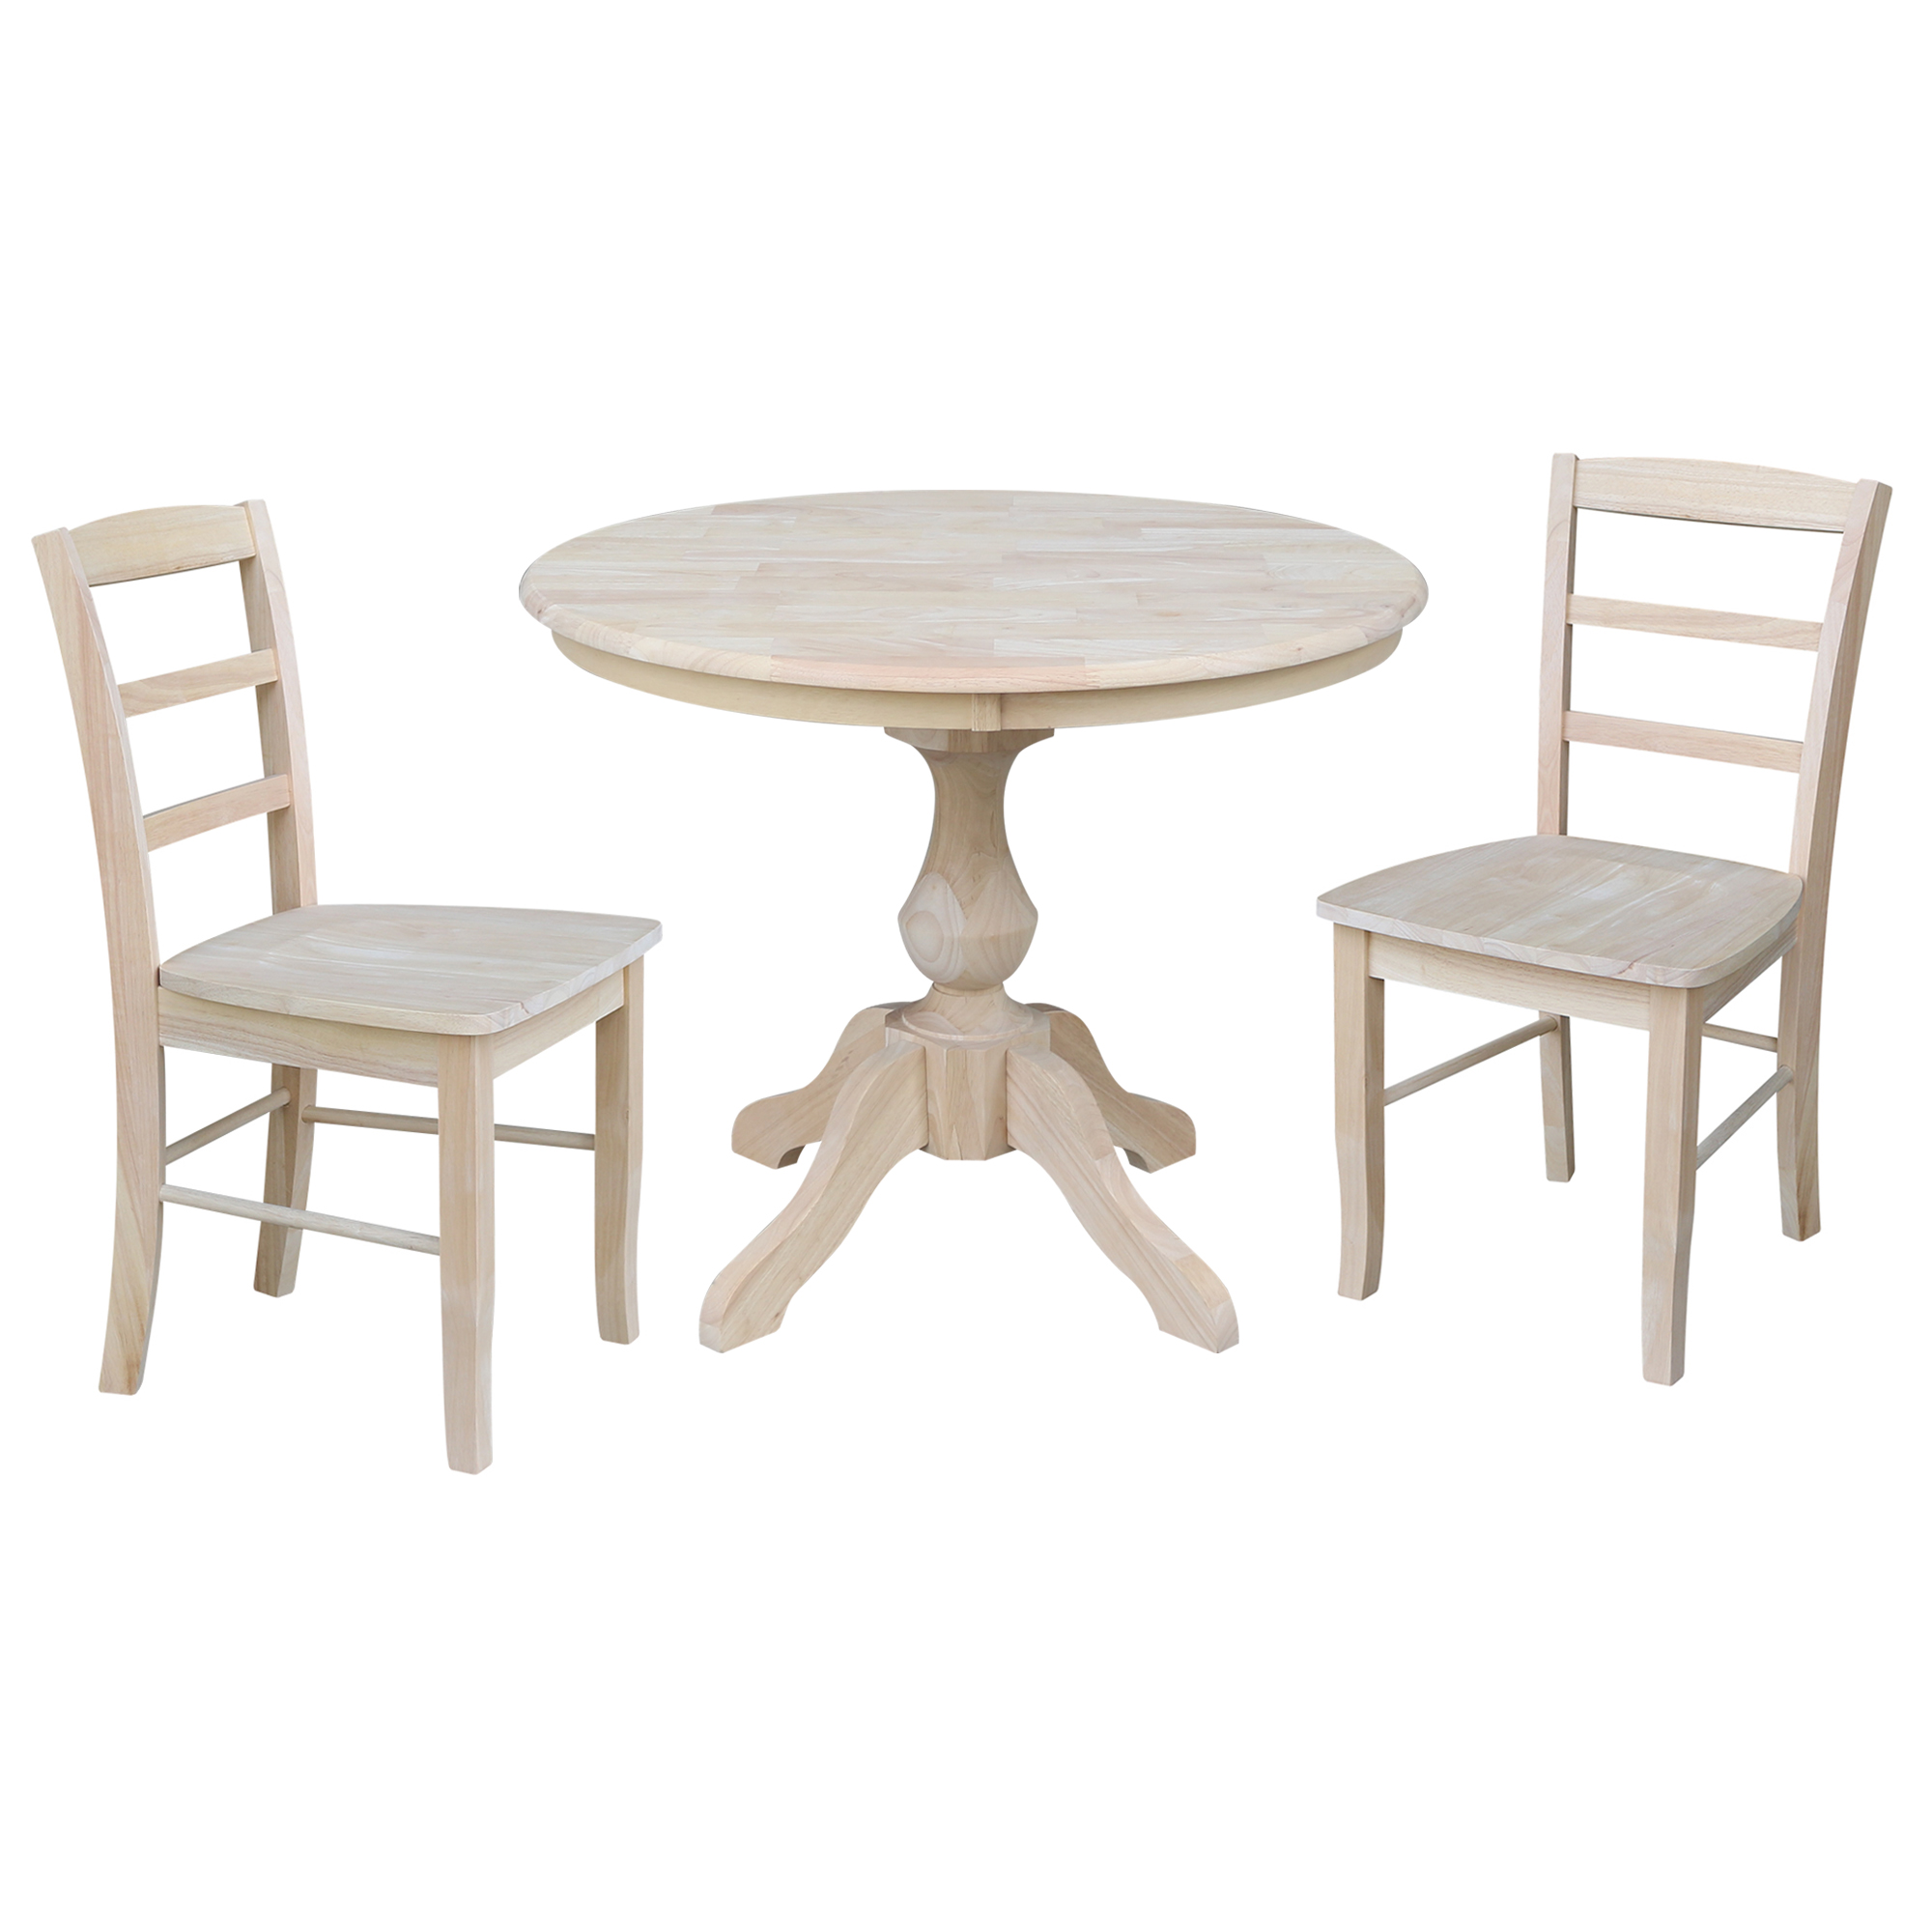 36 Round Top Pedestal Dining Table With 2 Madrid Chairs Unfinished 3 Piece Set